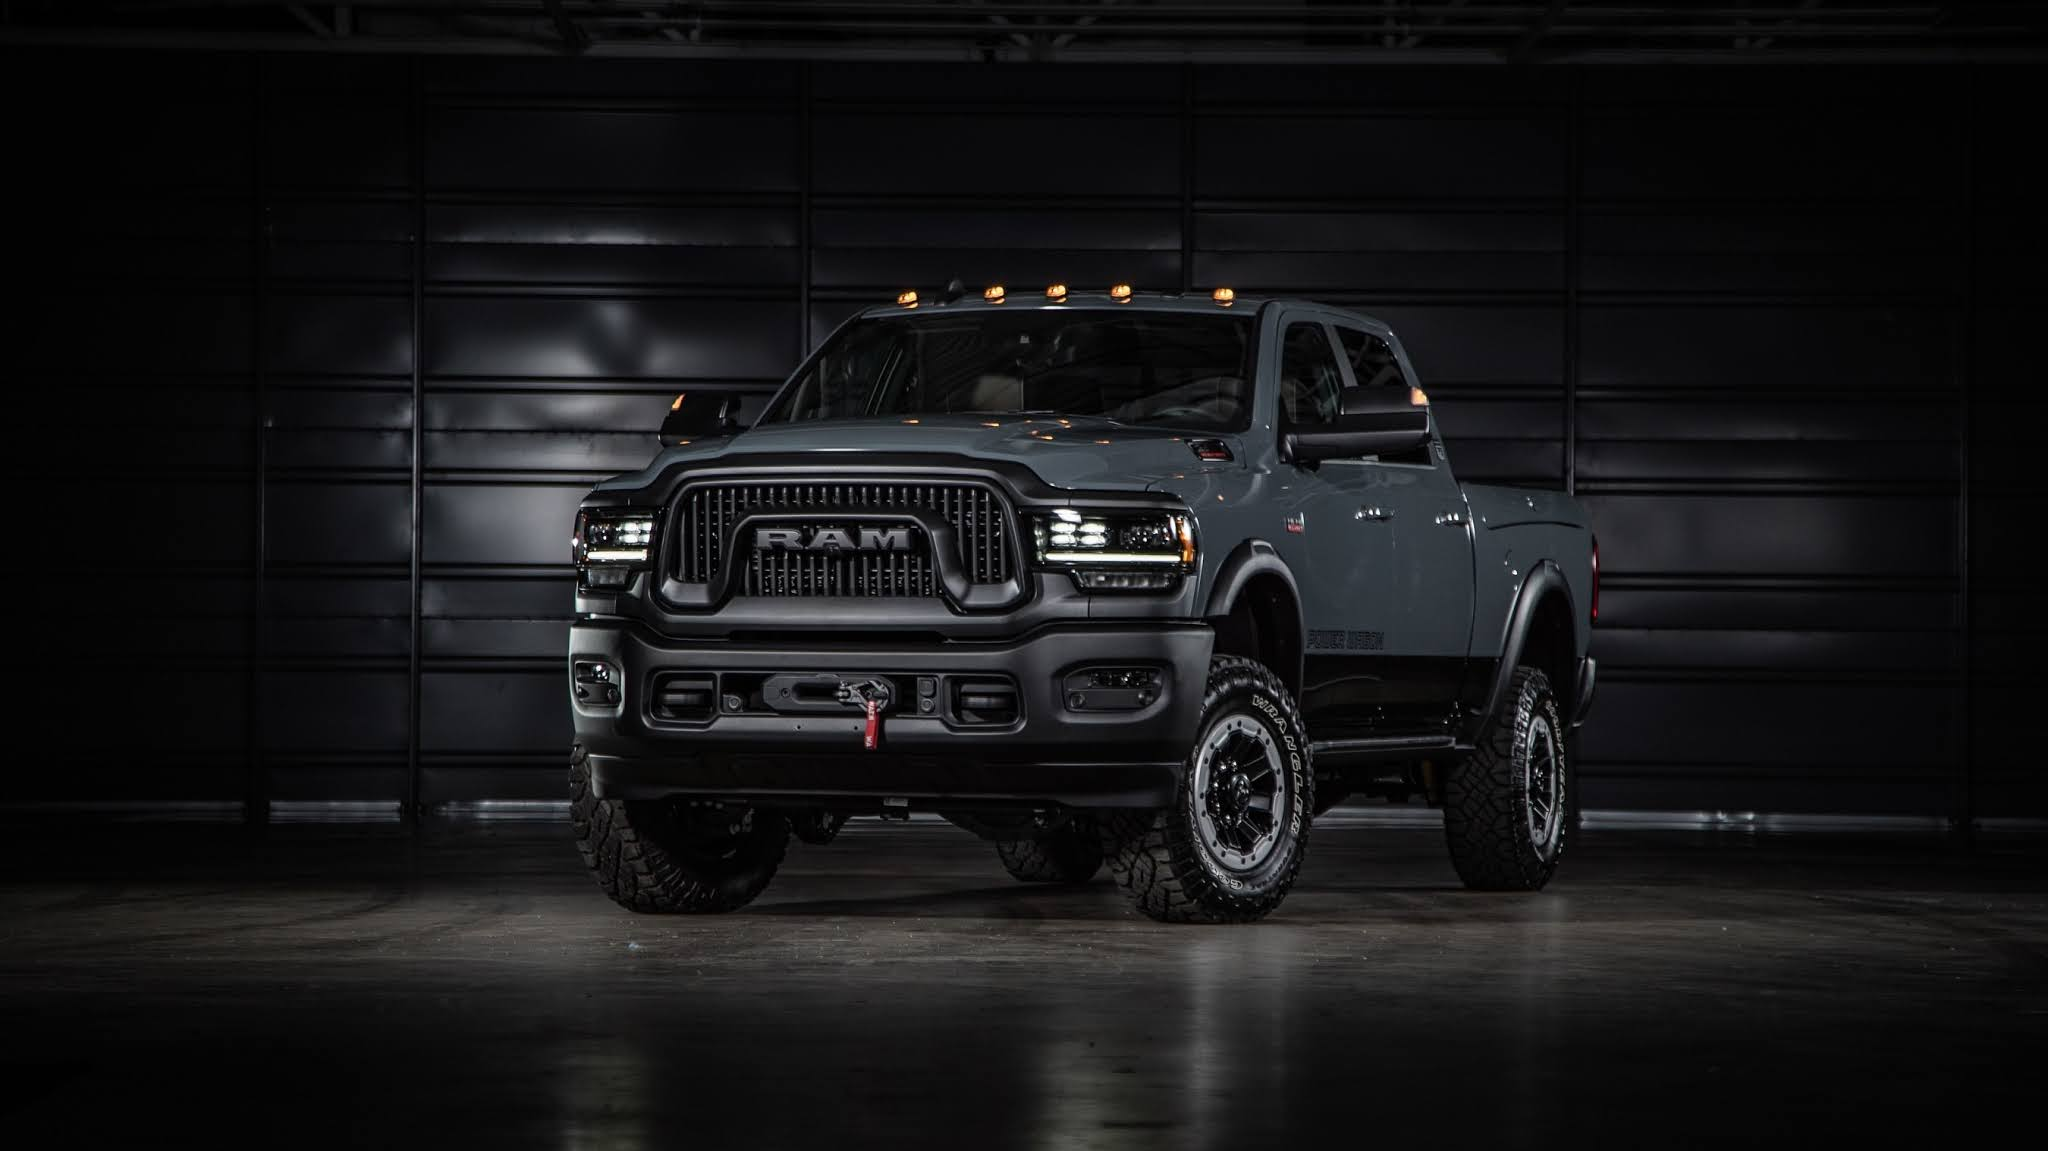 2021 Ram Power Wagon 75th Anniversary Edition - First Mass-production 4x4 Pickup Truck Celebrates 75 Years of Service